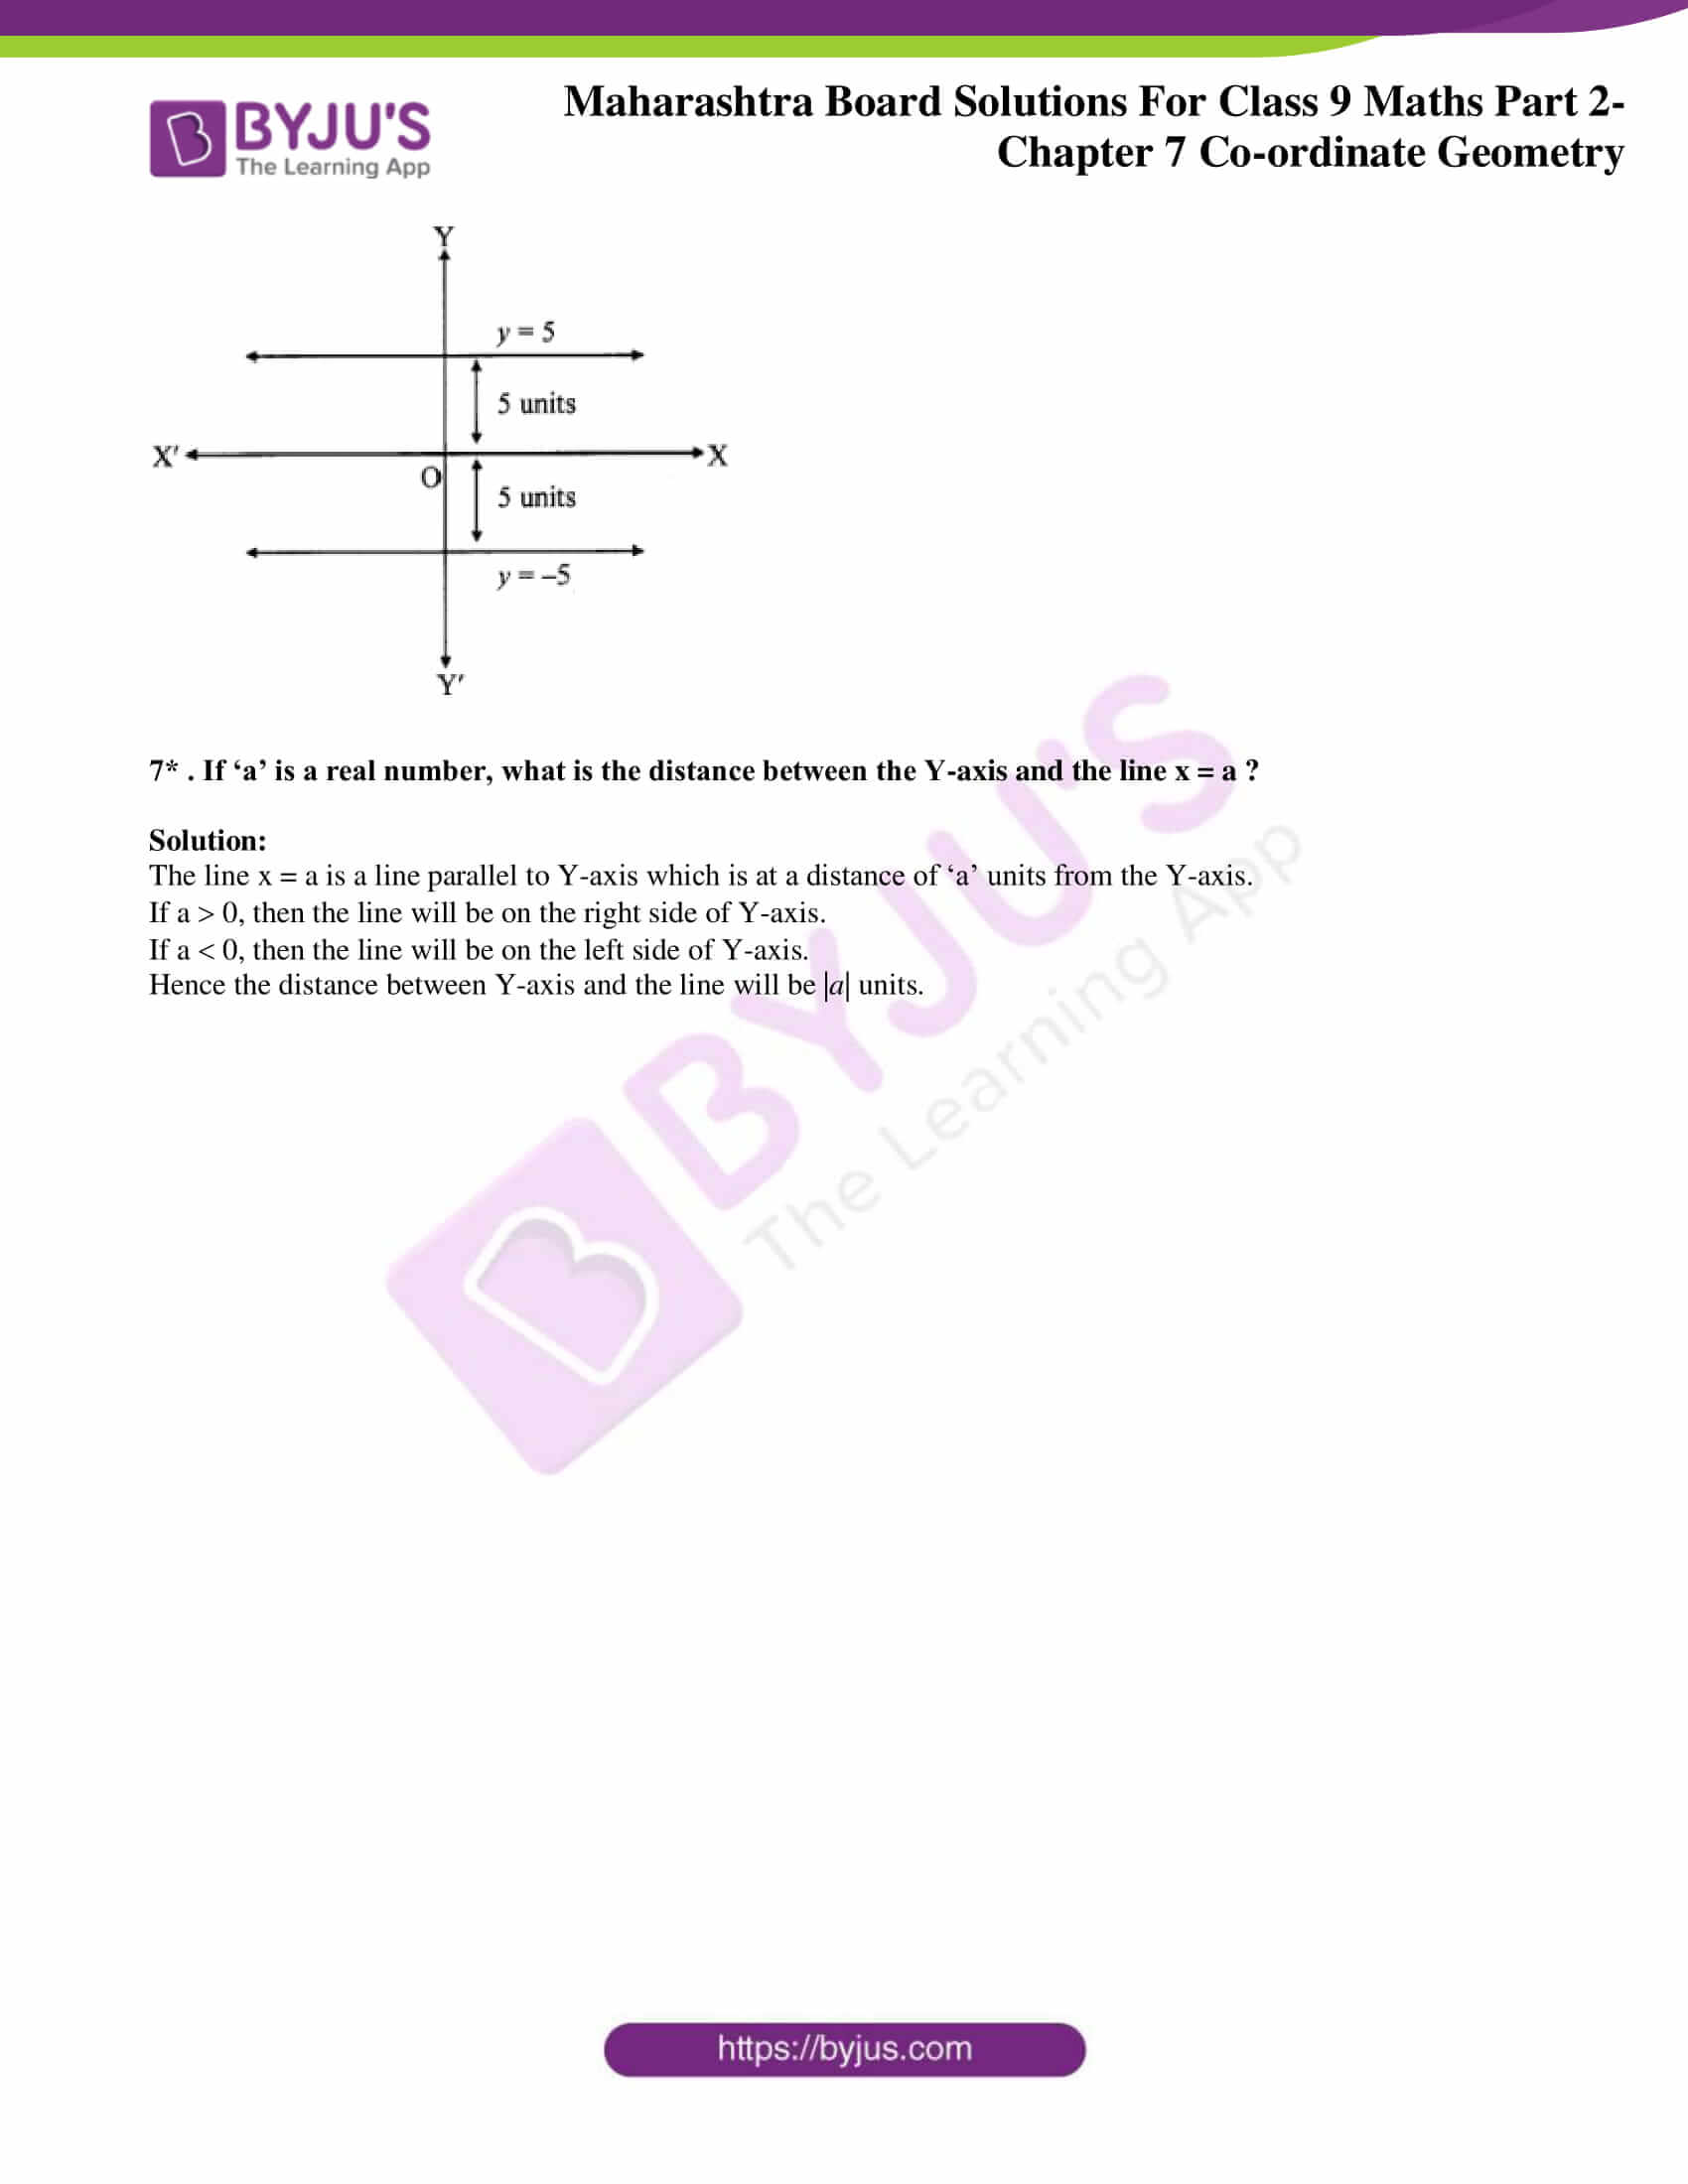 msbshse solutions for class 9 maths part 2 chapter 7 14